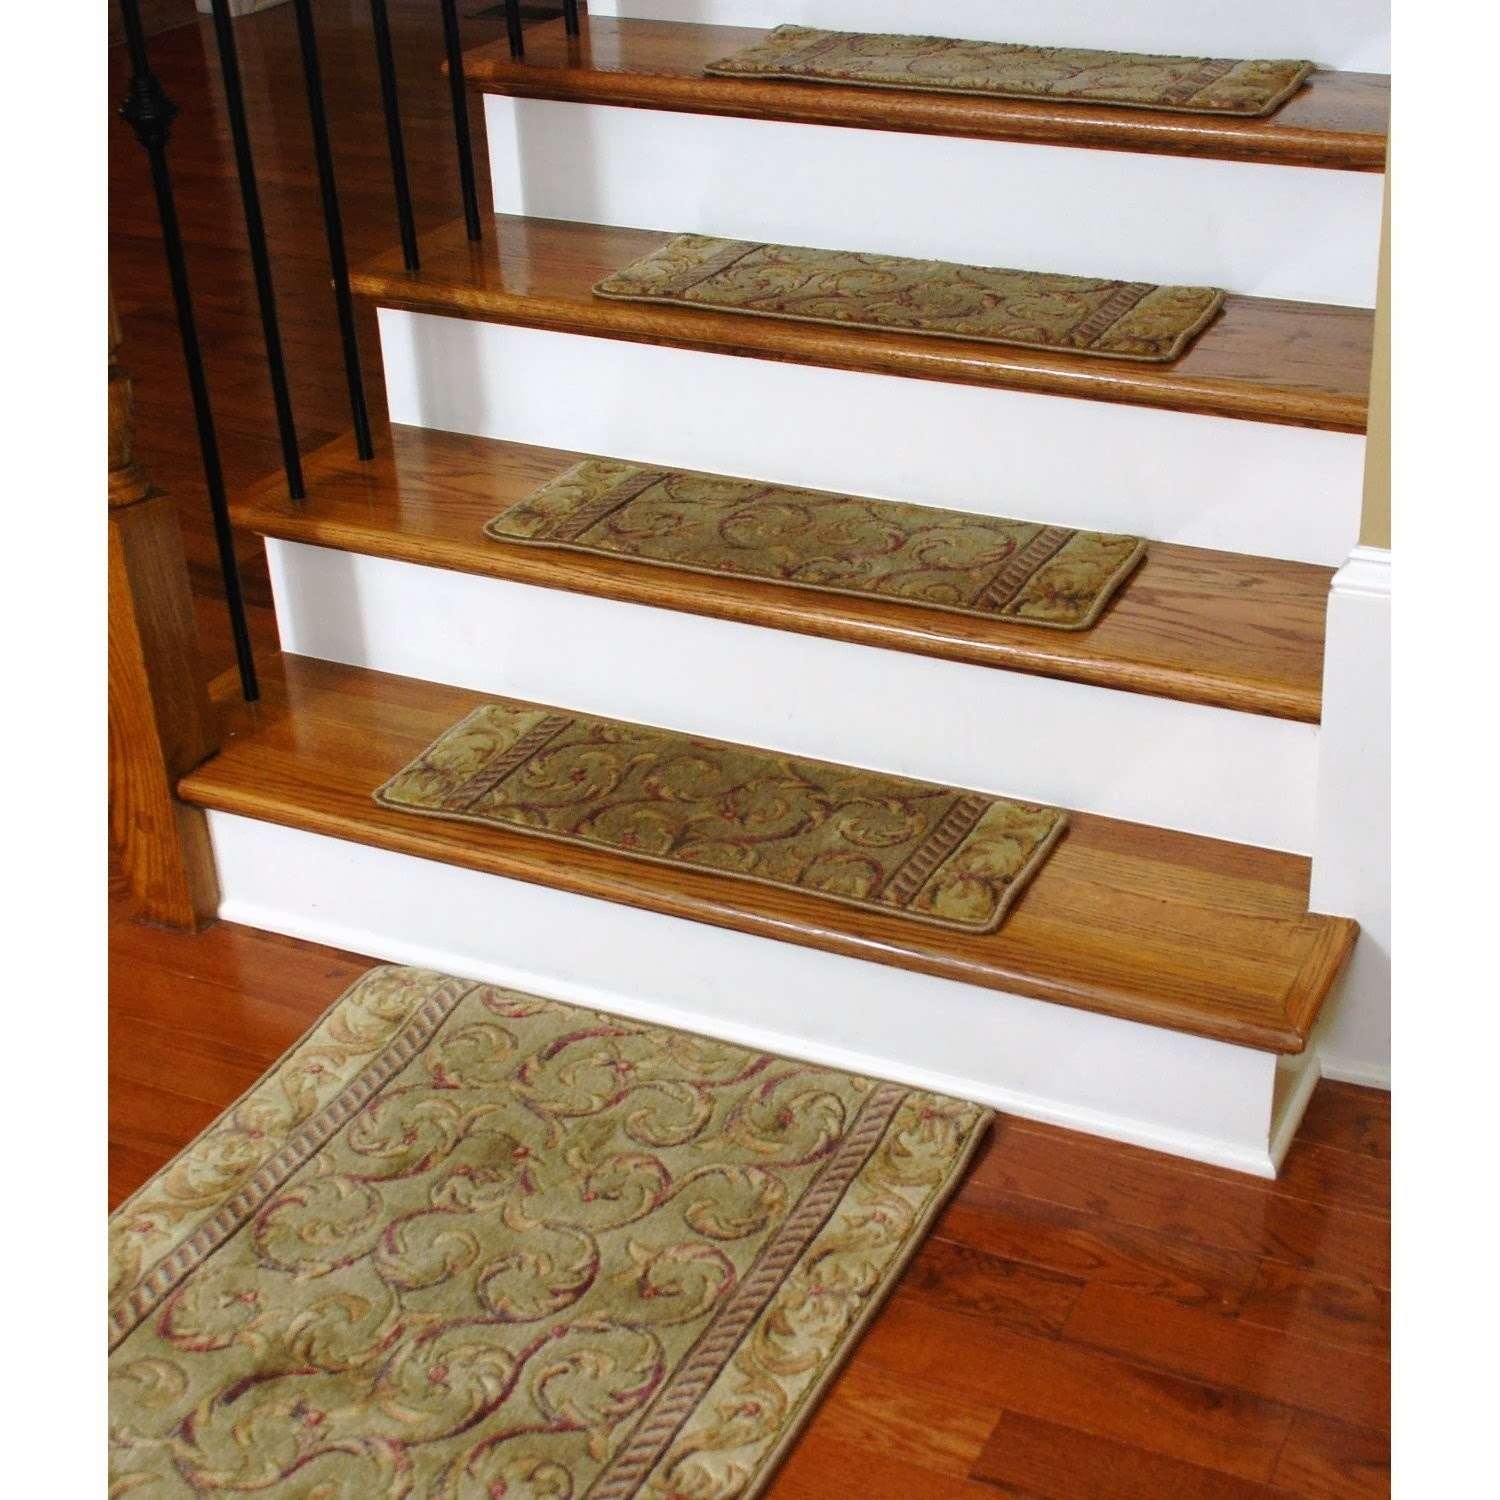 Cool Carpet Stair Treads With Rug Carpet Stairs Treads And Runners For Stair Tread Carpet Runners (Image 5 of 15)